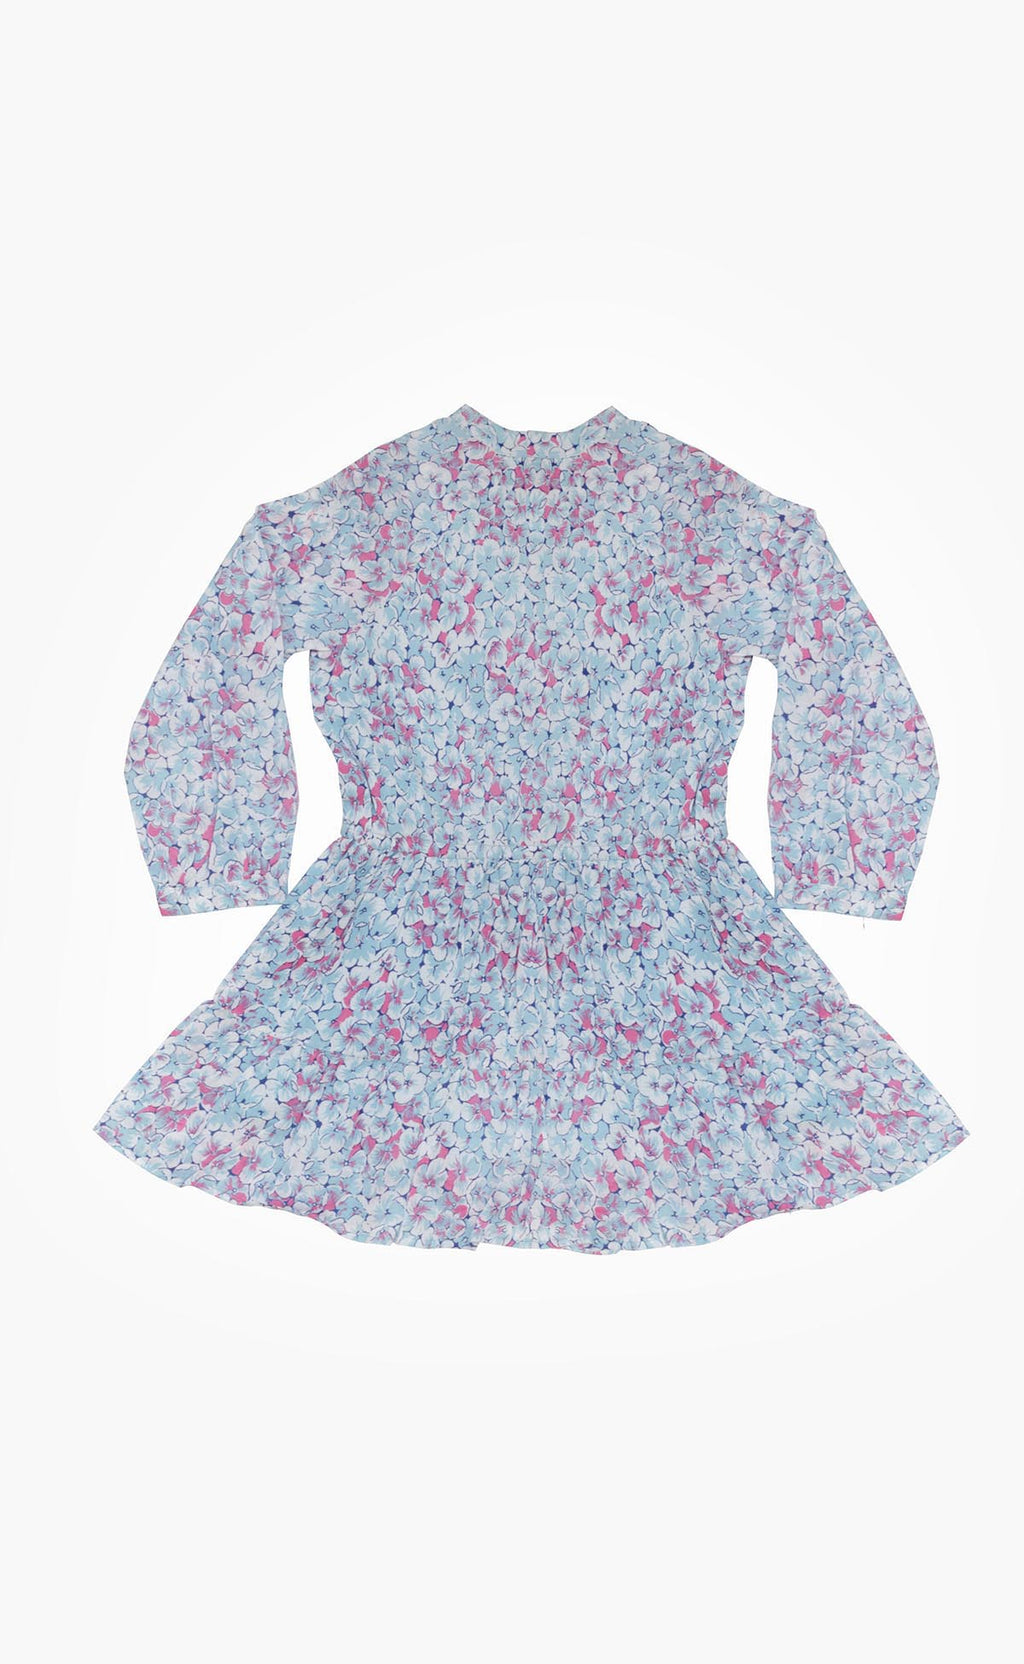 Chota Bazaar Dress Clover Field White Blue